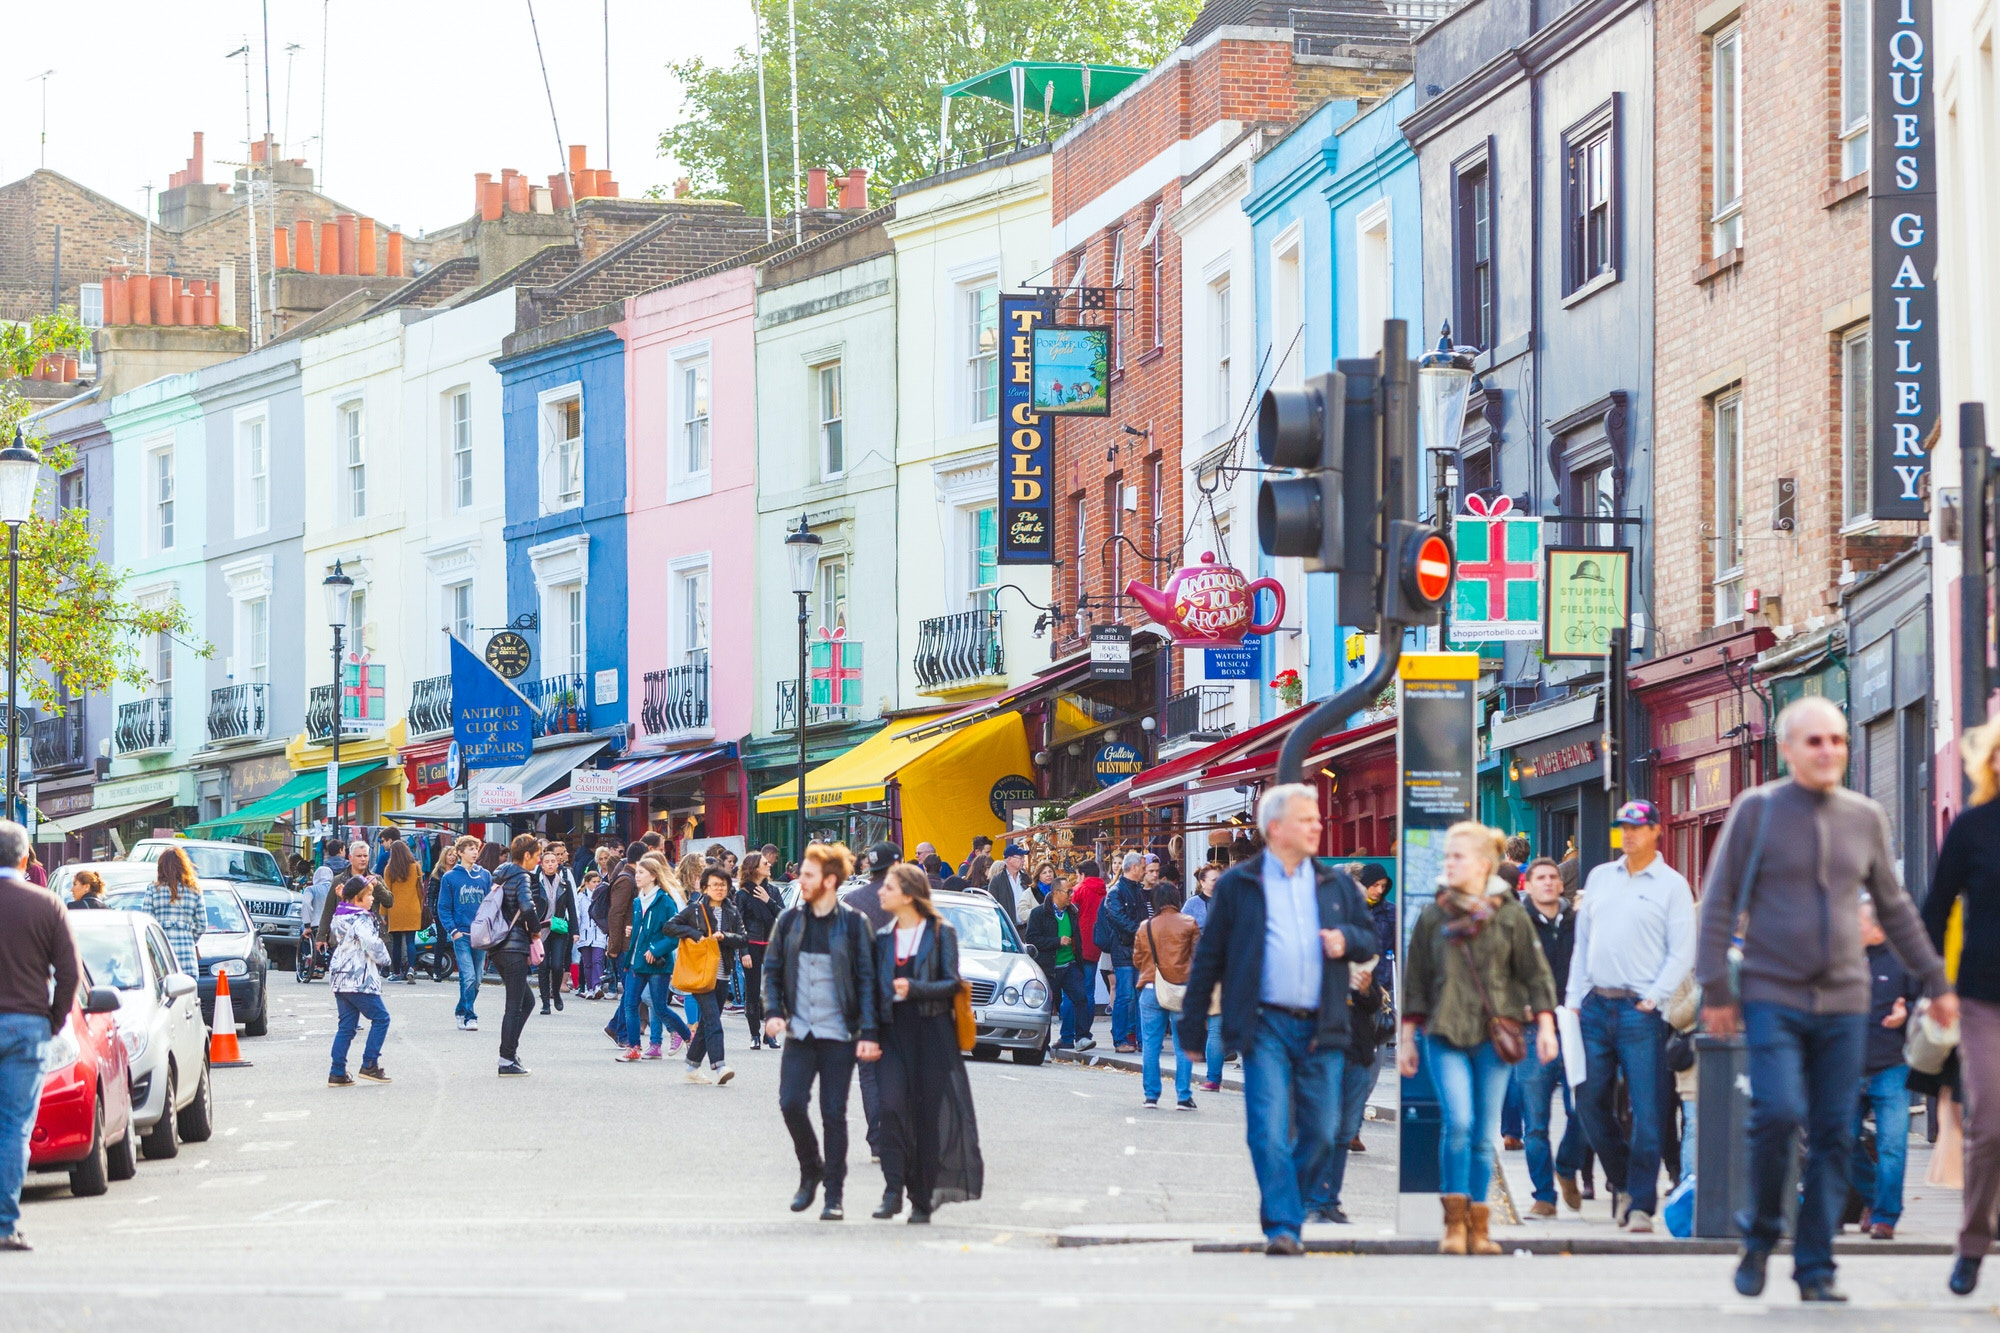 People stroll along London's Portobello Road, a famous market area in Notting Hill district